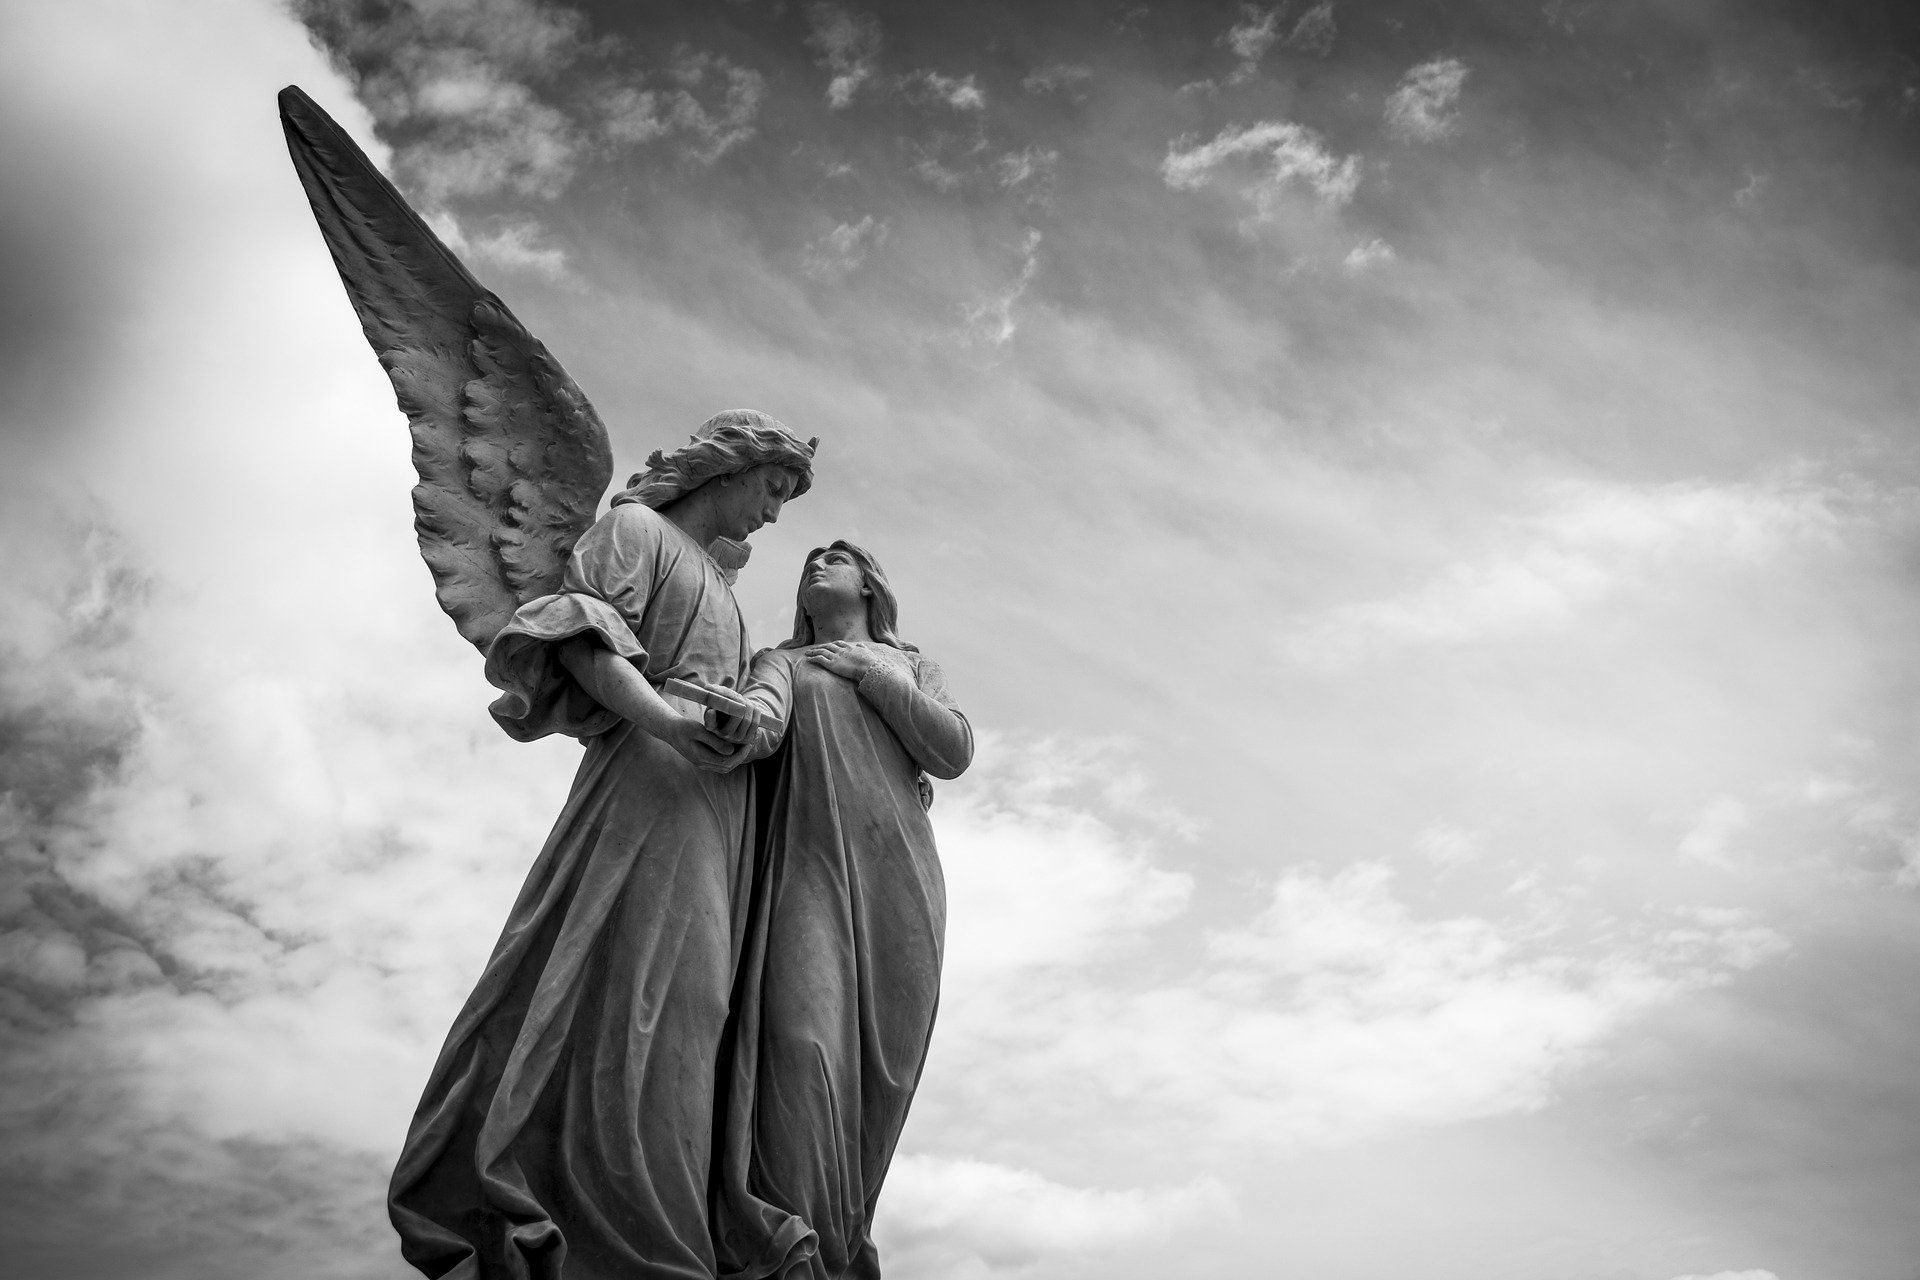 Theolyn Cortens on Living with Angels